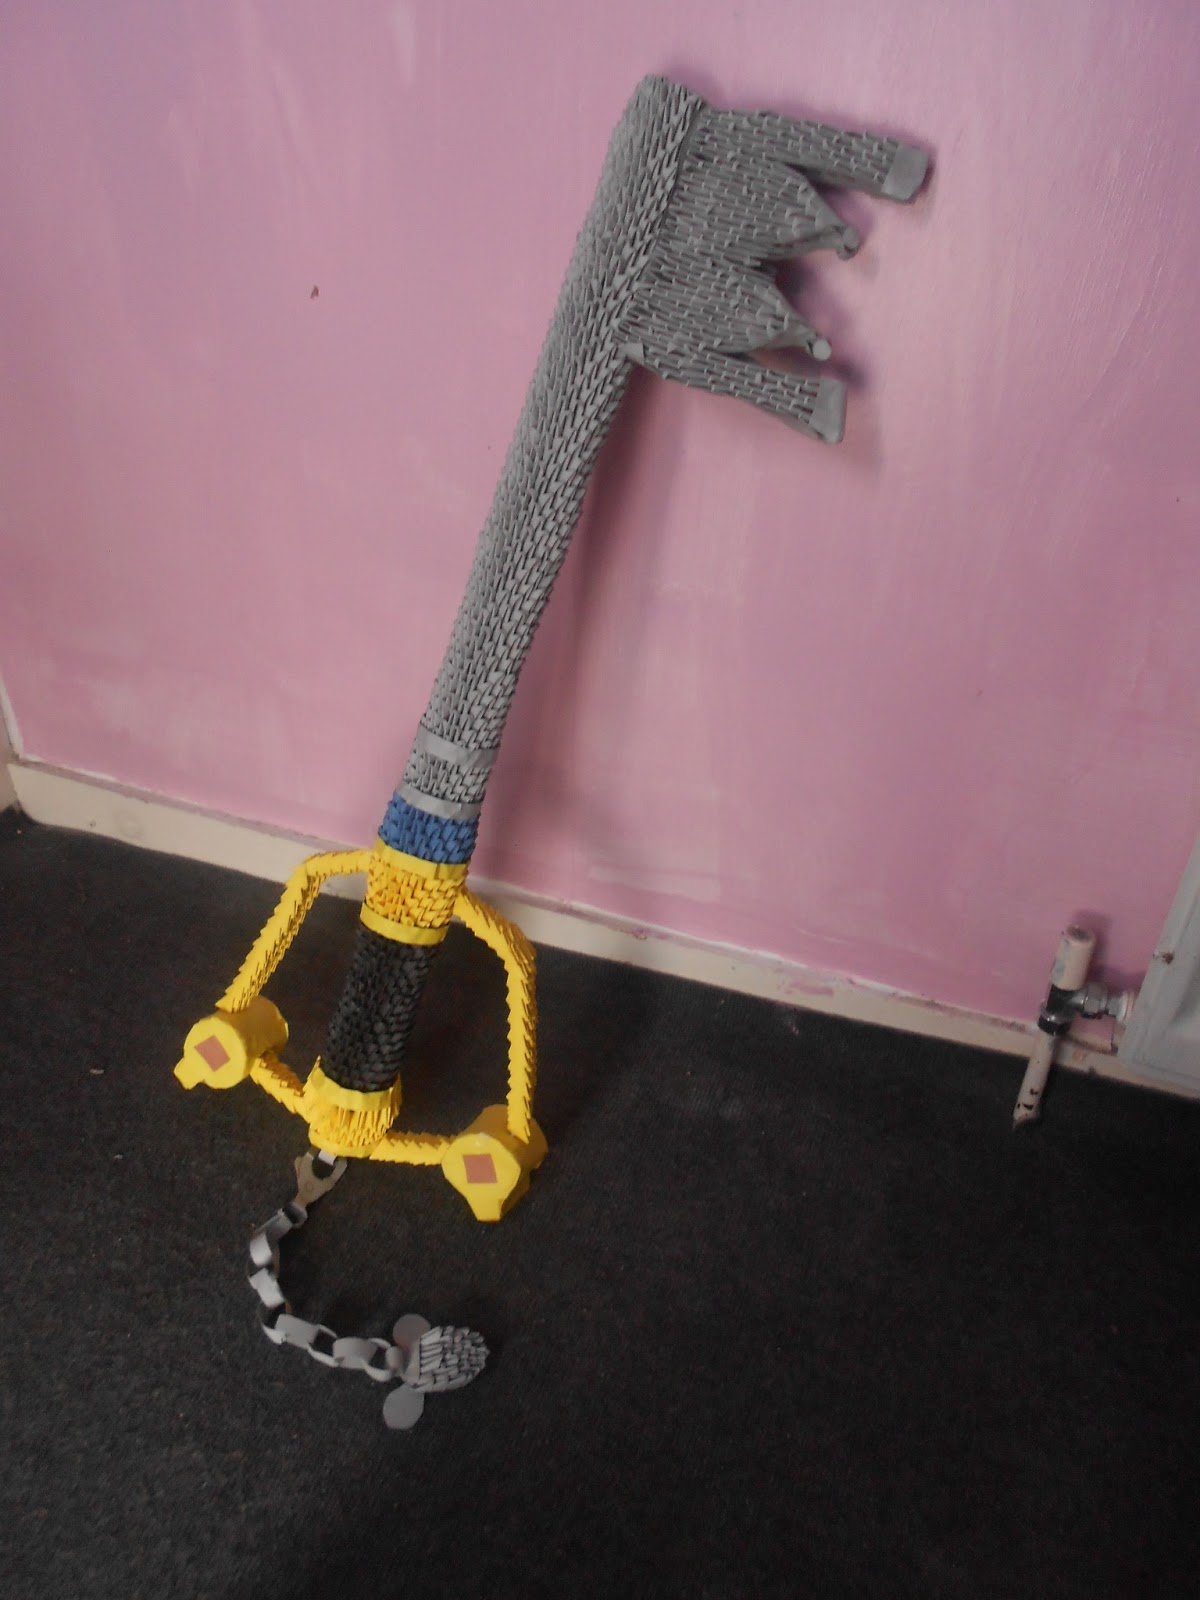 This Is A 3D Oragami Keyblade From The Video Game Kingdom Hearts